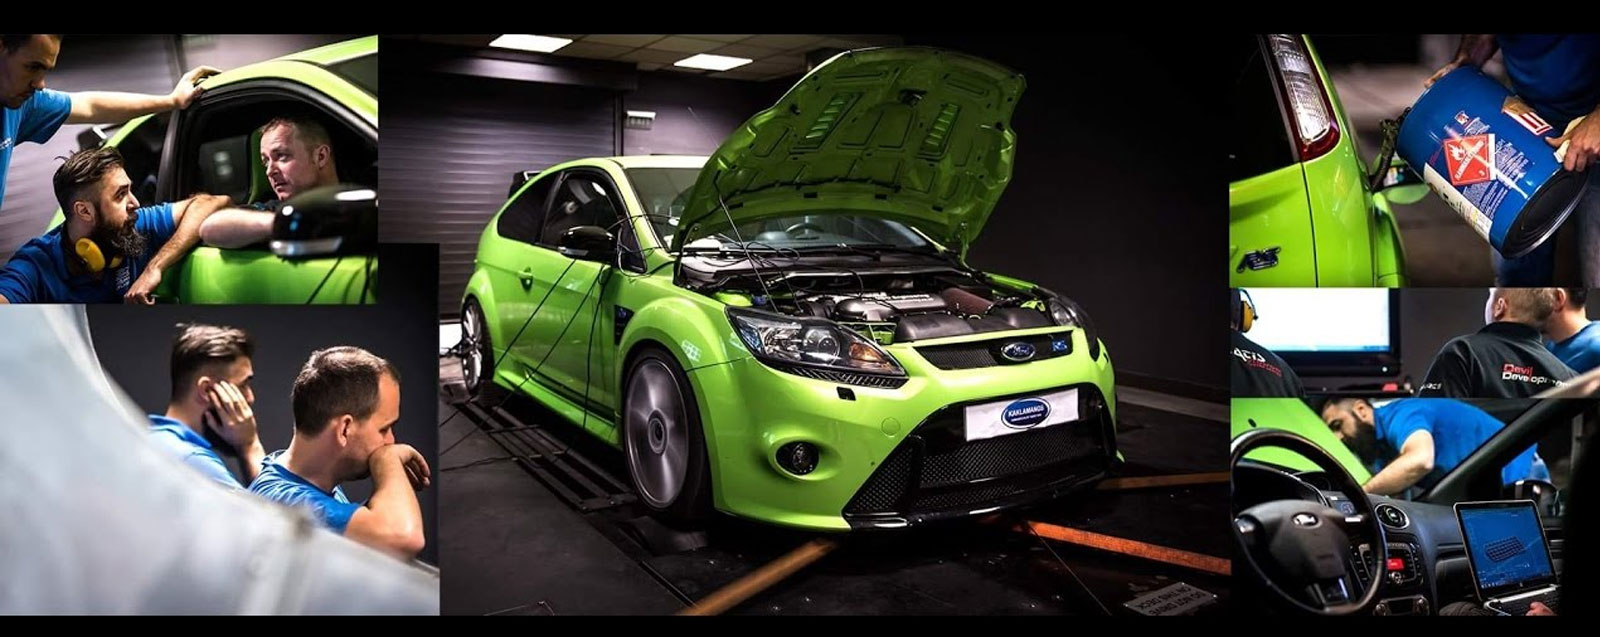 A tribute to the Focus RS II owners of our workshop